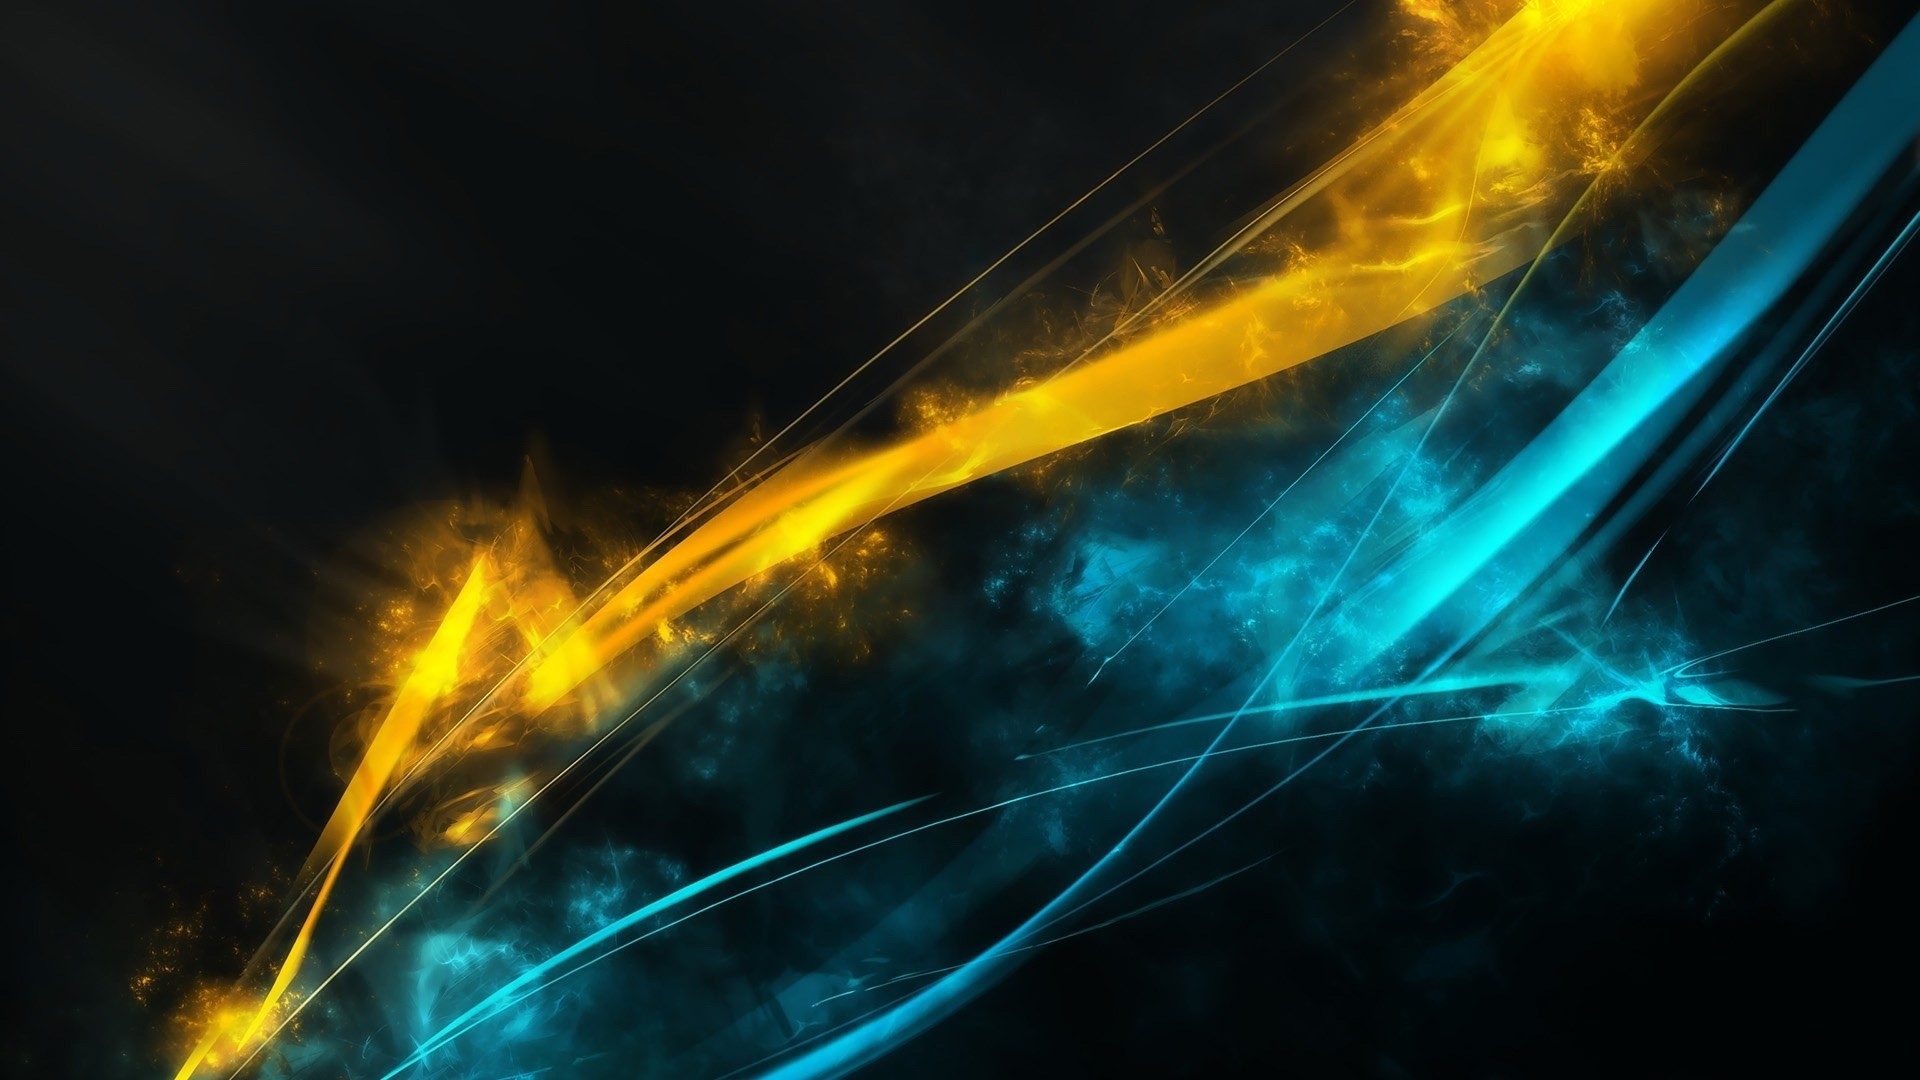 10 Latest Abstract Wallpaper 1920X1080 Hd FULL HD 1080p For PC Background